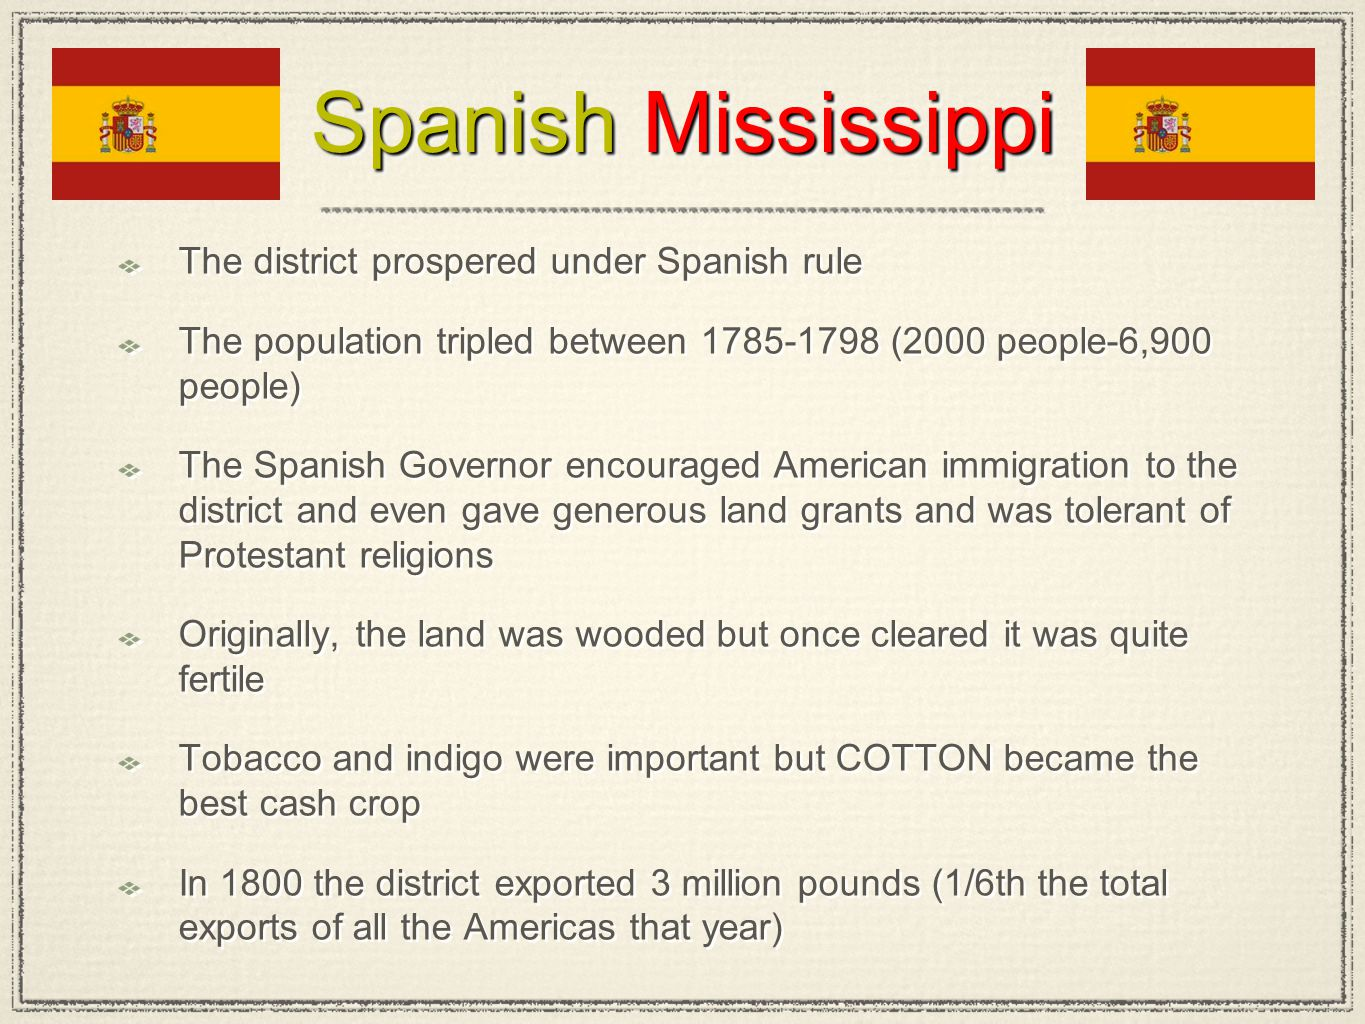 Spanish Mississippi The district prospered under Spanish rule The population tripled between 1785-1798 (2000 people-6,900 people) The Spanish Governor